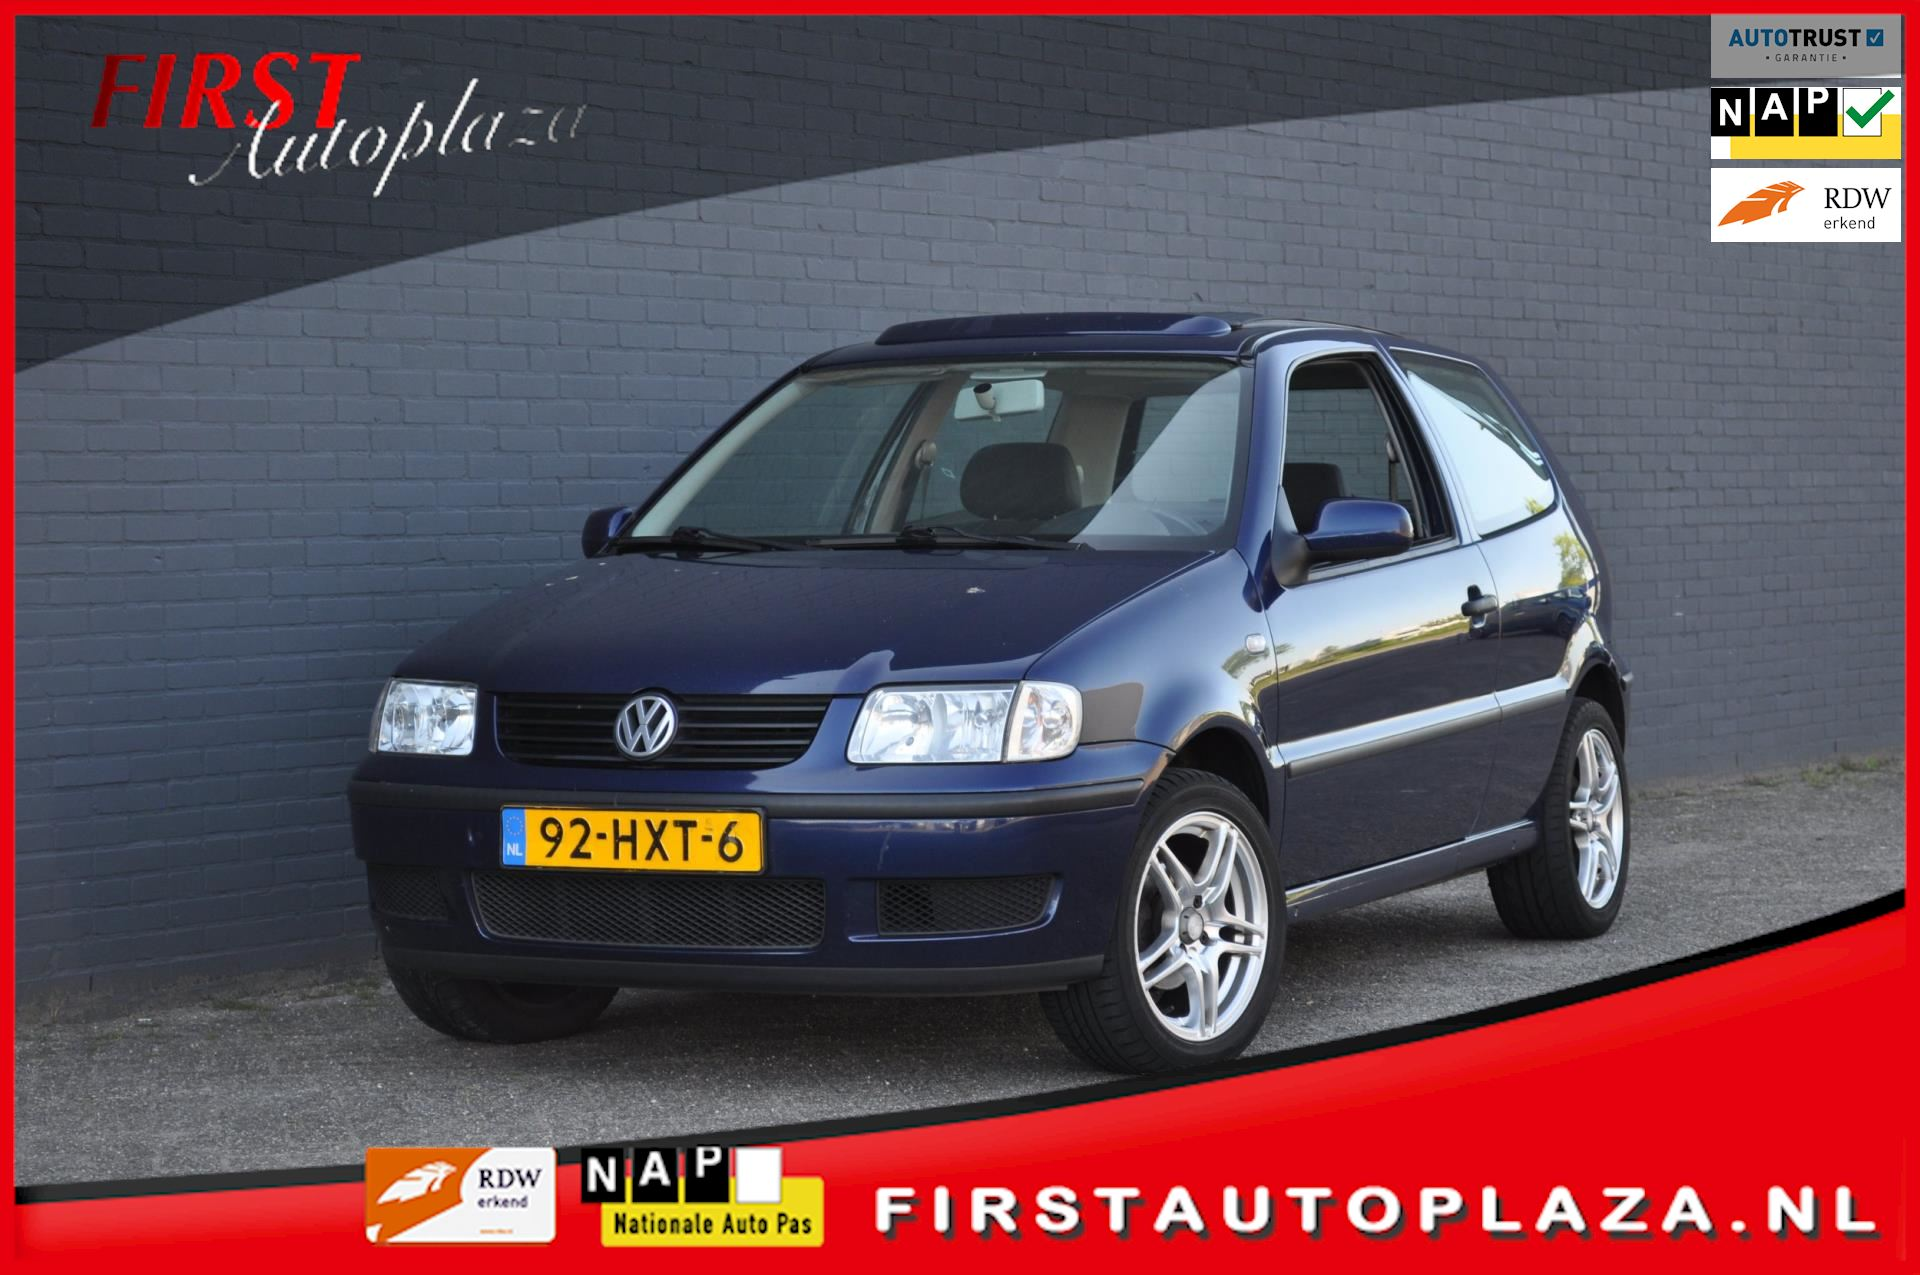 Volkswagen Polo occasion - FIRST Autoplaza B.V.